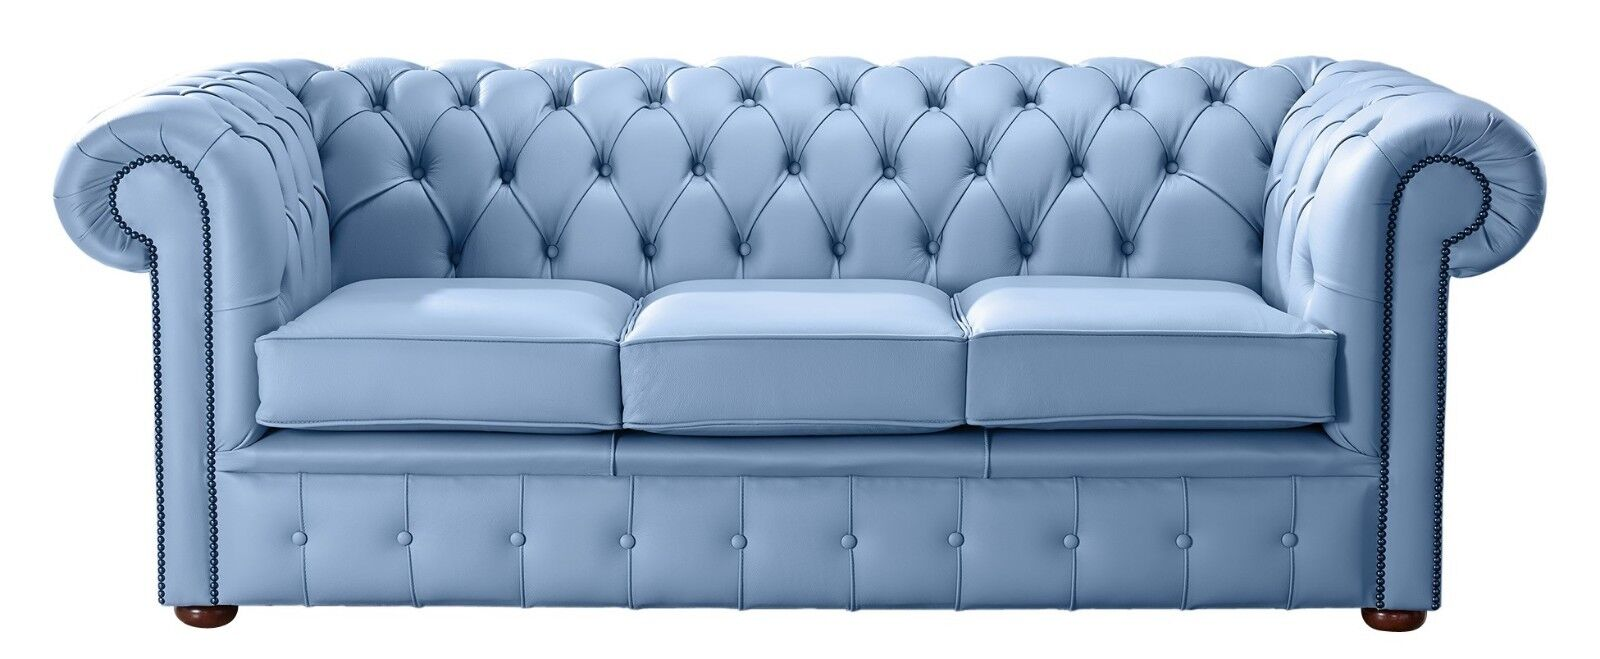 Details about Modern Leather Chesterfield Handmade 3 Seater Sofa Settee Shelly Haze Blue